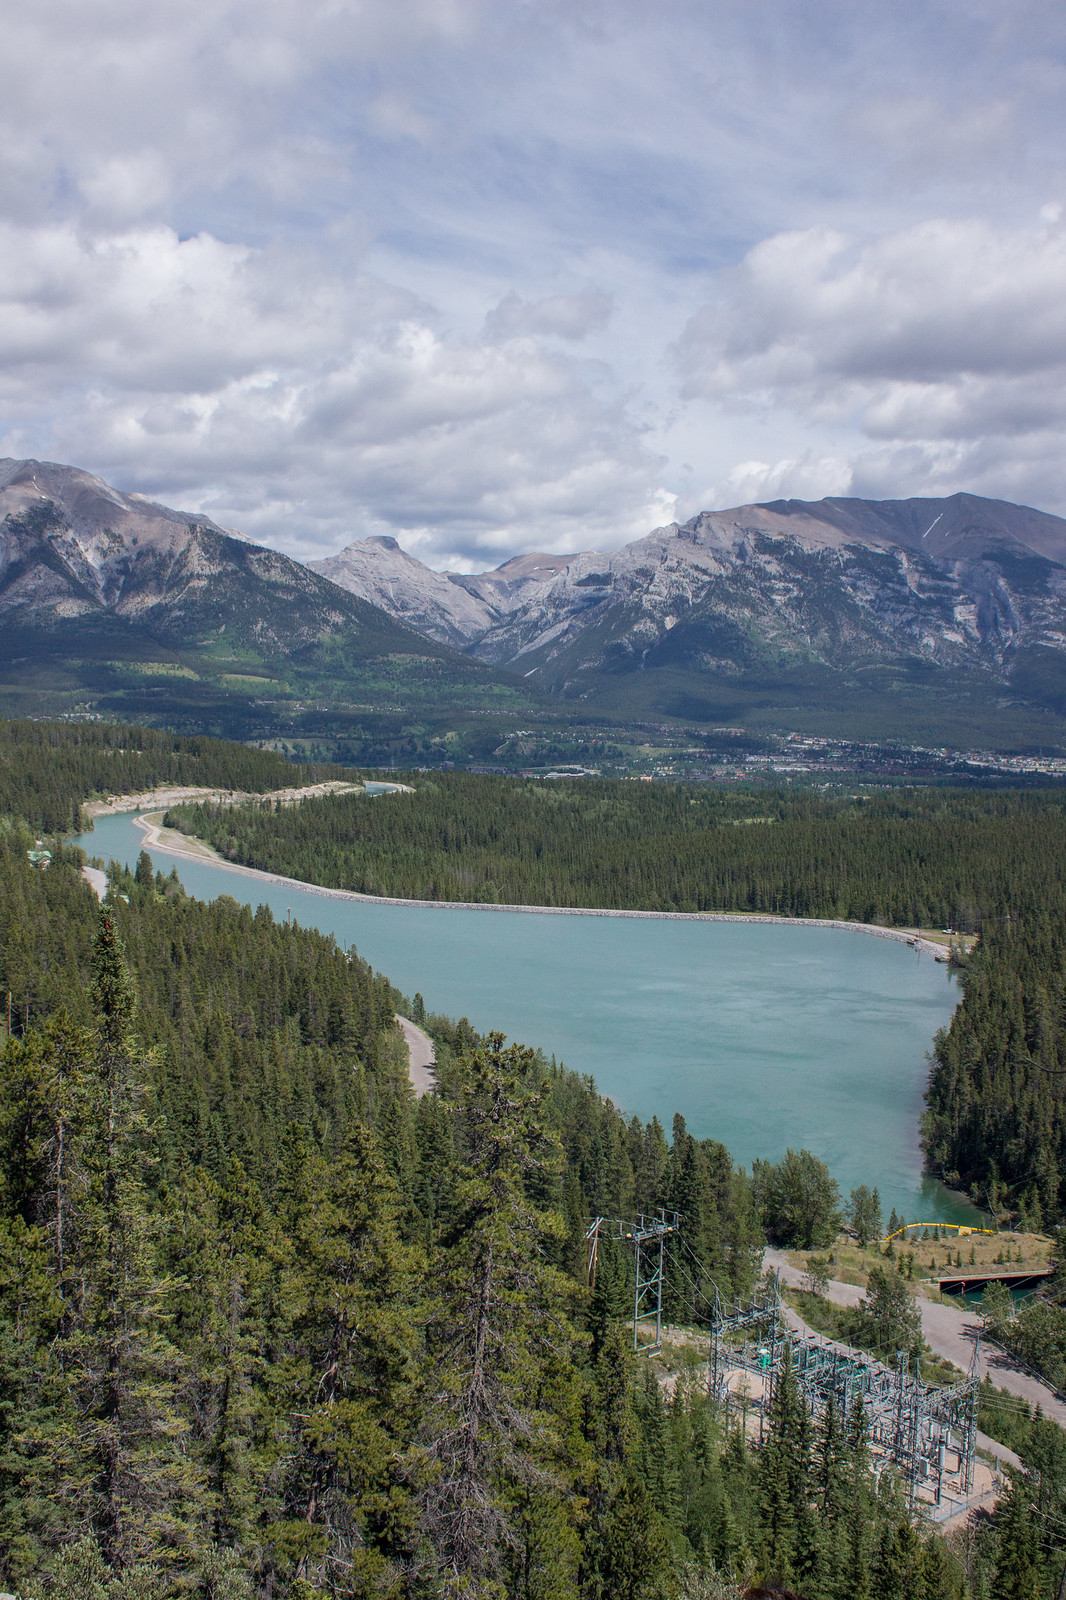 The view over Canmore from the Grassi Lakes trail